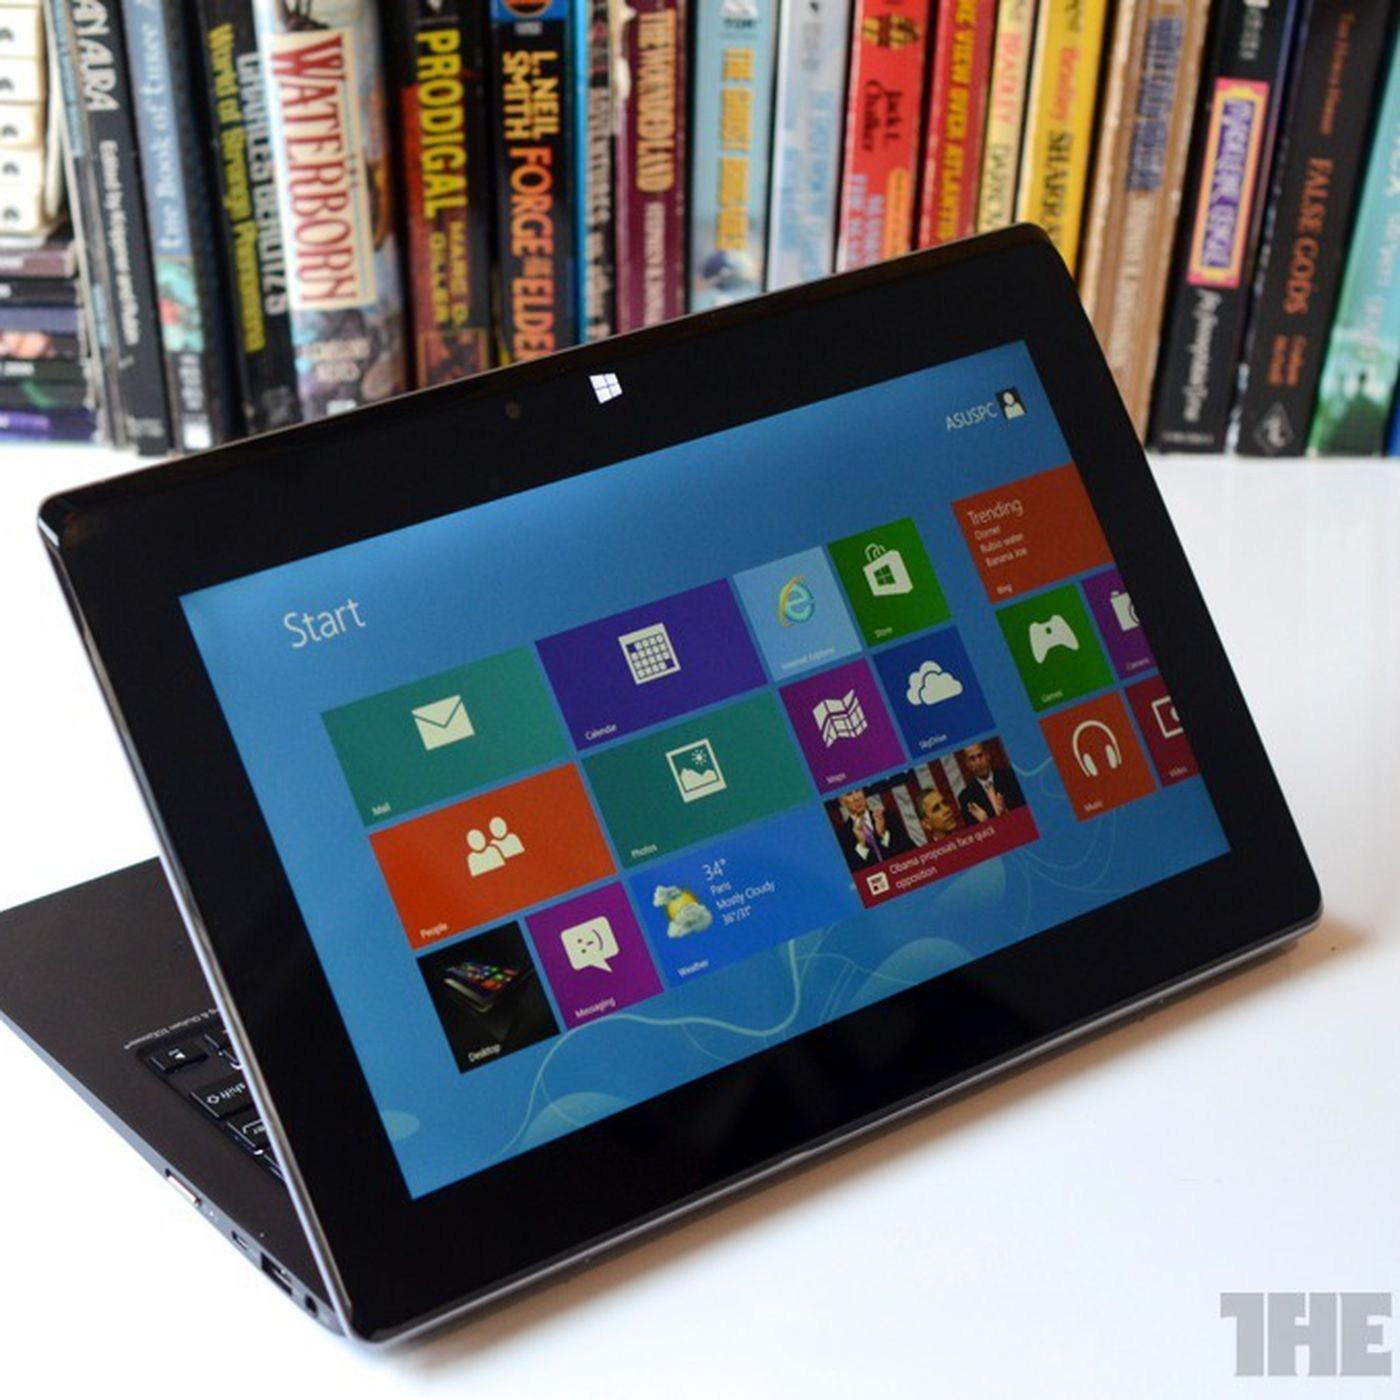 Asus Taichi review (11 6-inch) - The Verge